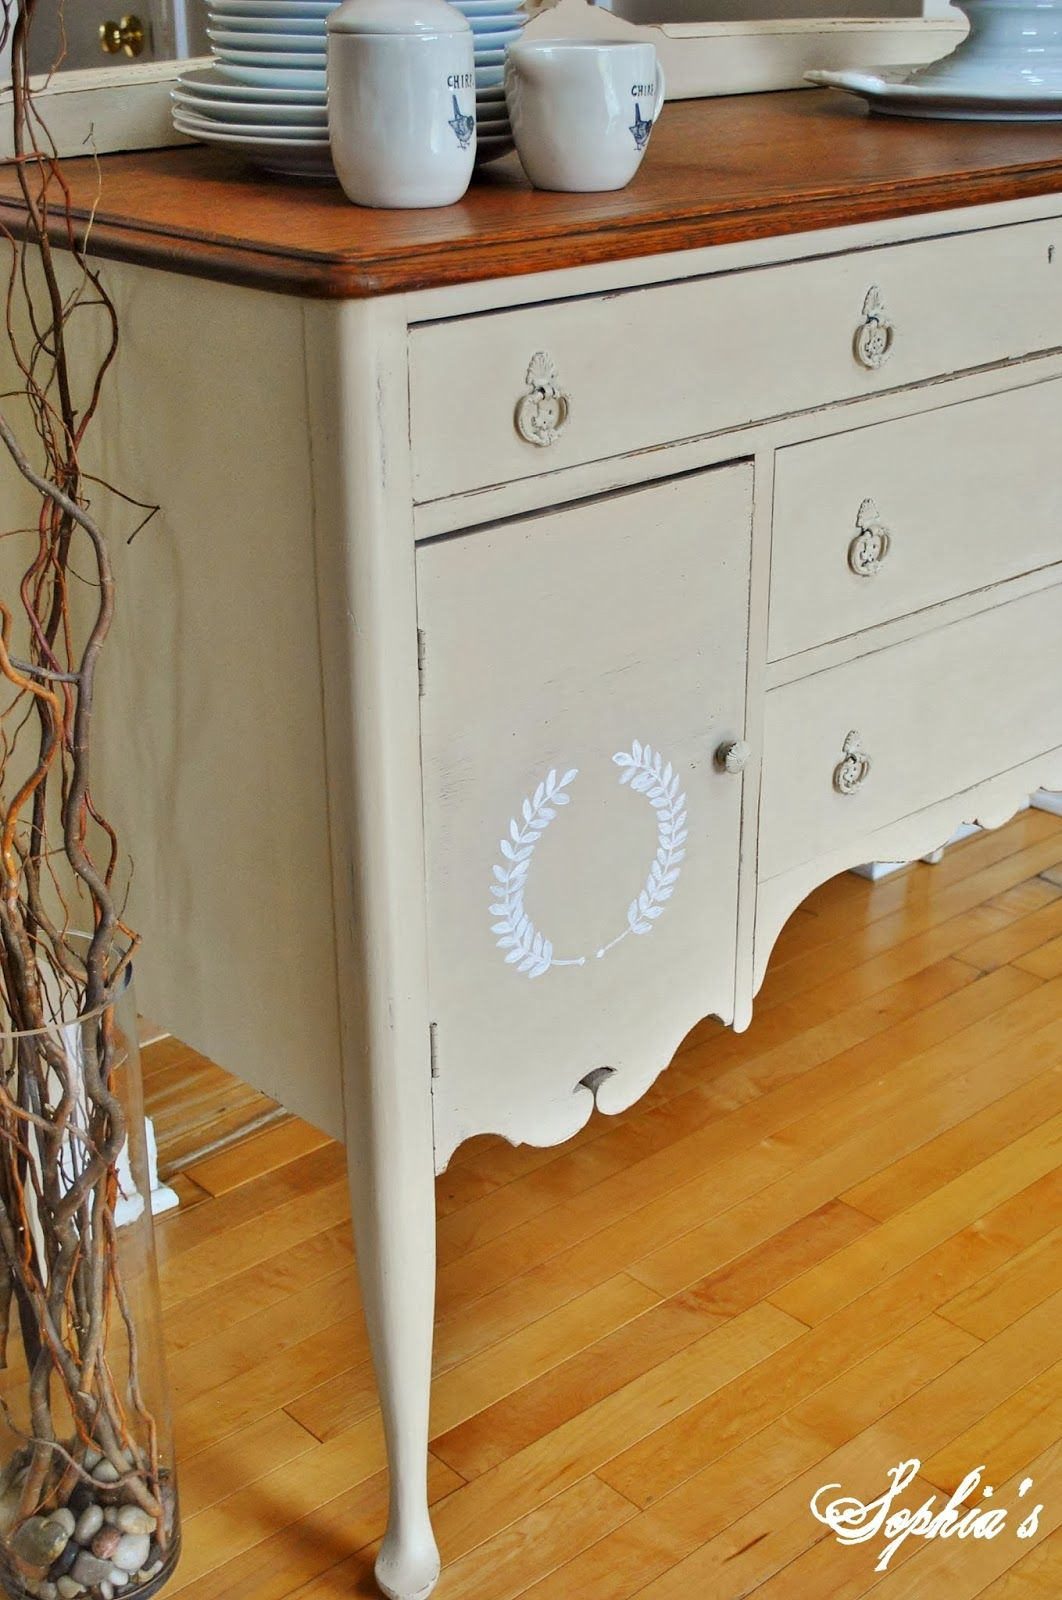 Sophia s Simple Sideboard Makeover with Old Ochre Chalk Paint